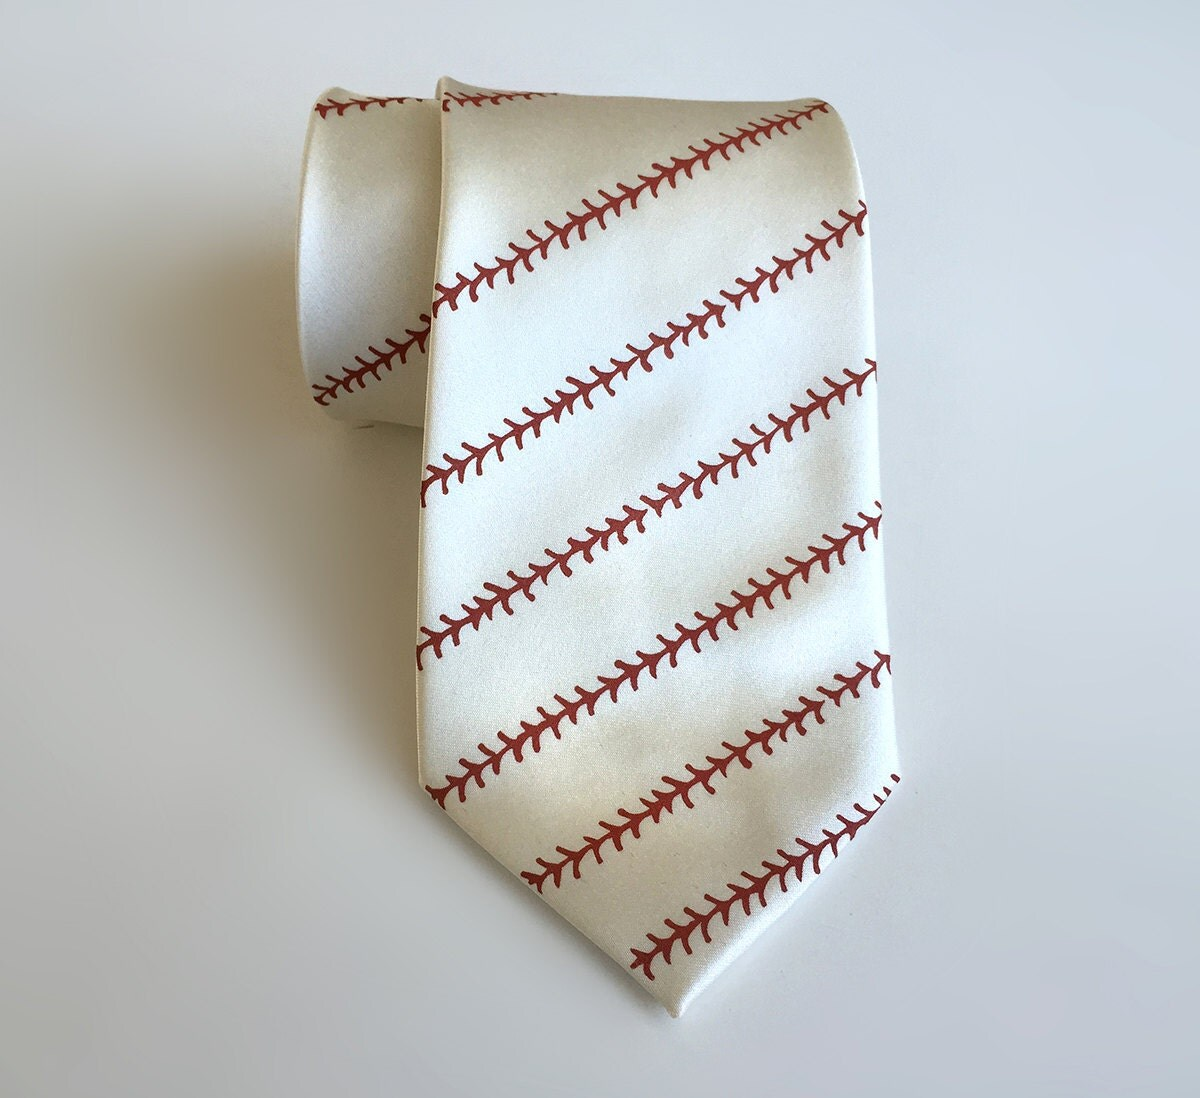 Baseball Necktie for Boys & Men - Looking for a men's baseball tie? Show off your love for the sport with a designer men's baseball necktie. They're available in fun colors and cool designs. Shop online today! Free shipping and returns.